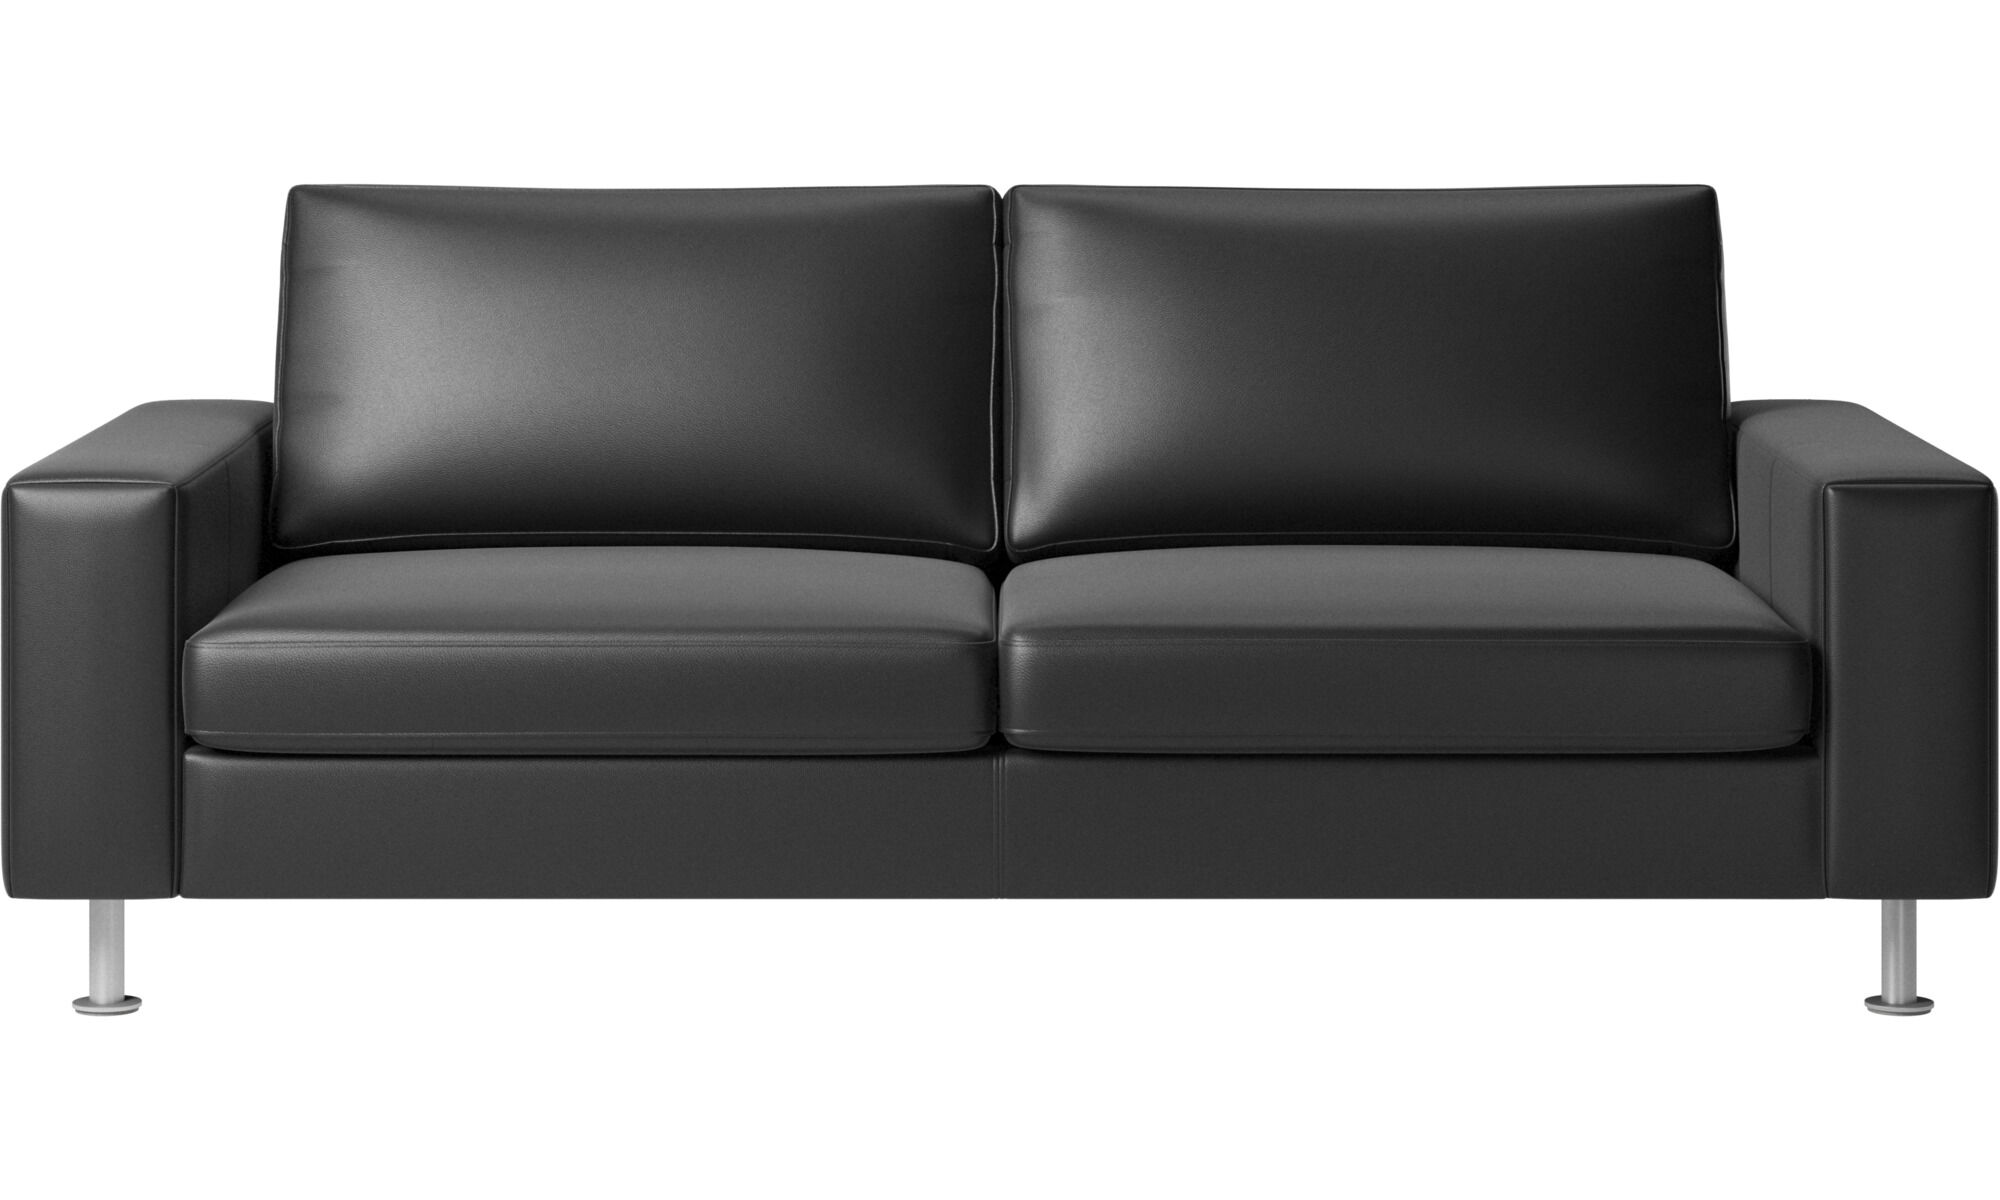 Sofa Beds   Indivi 2 Sofa Bed   Black   Leather. Add To Favorites